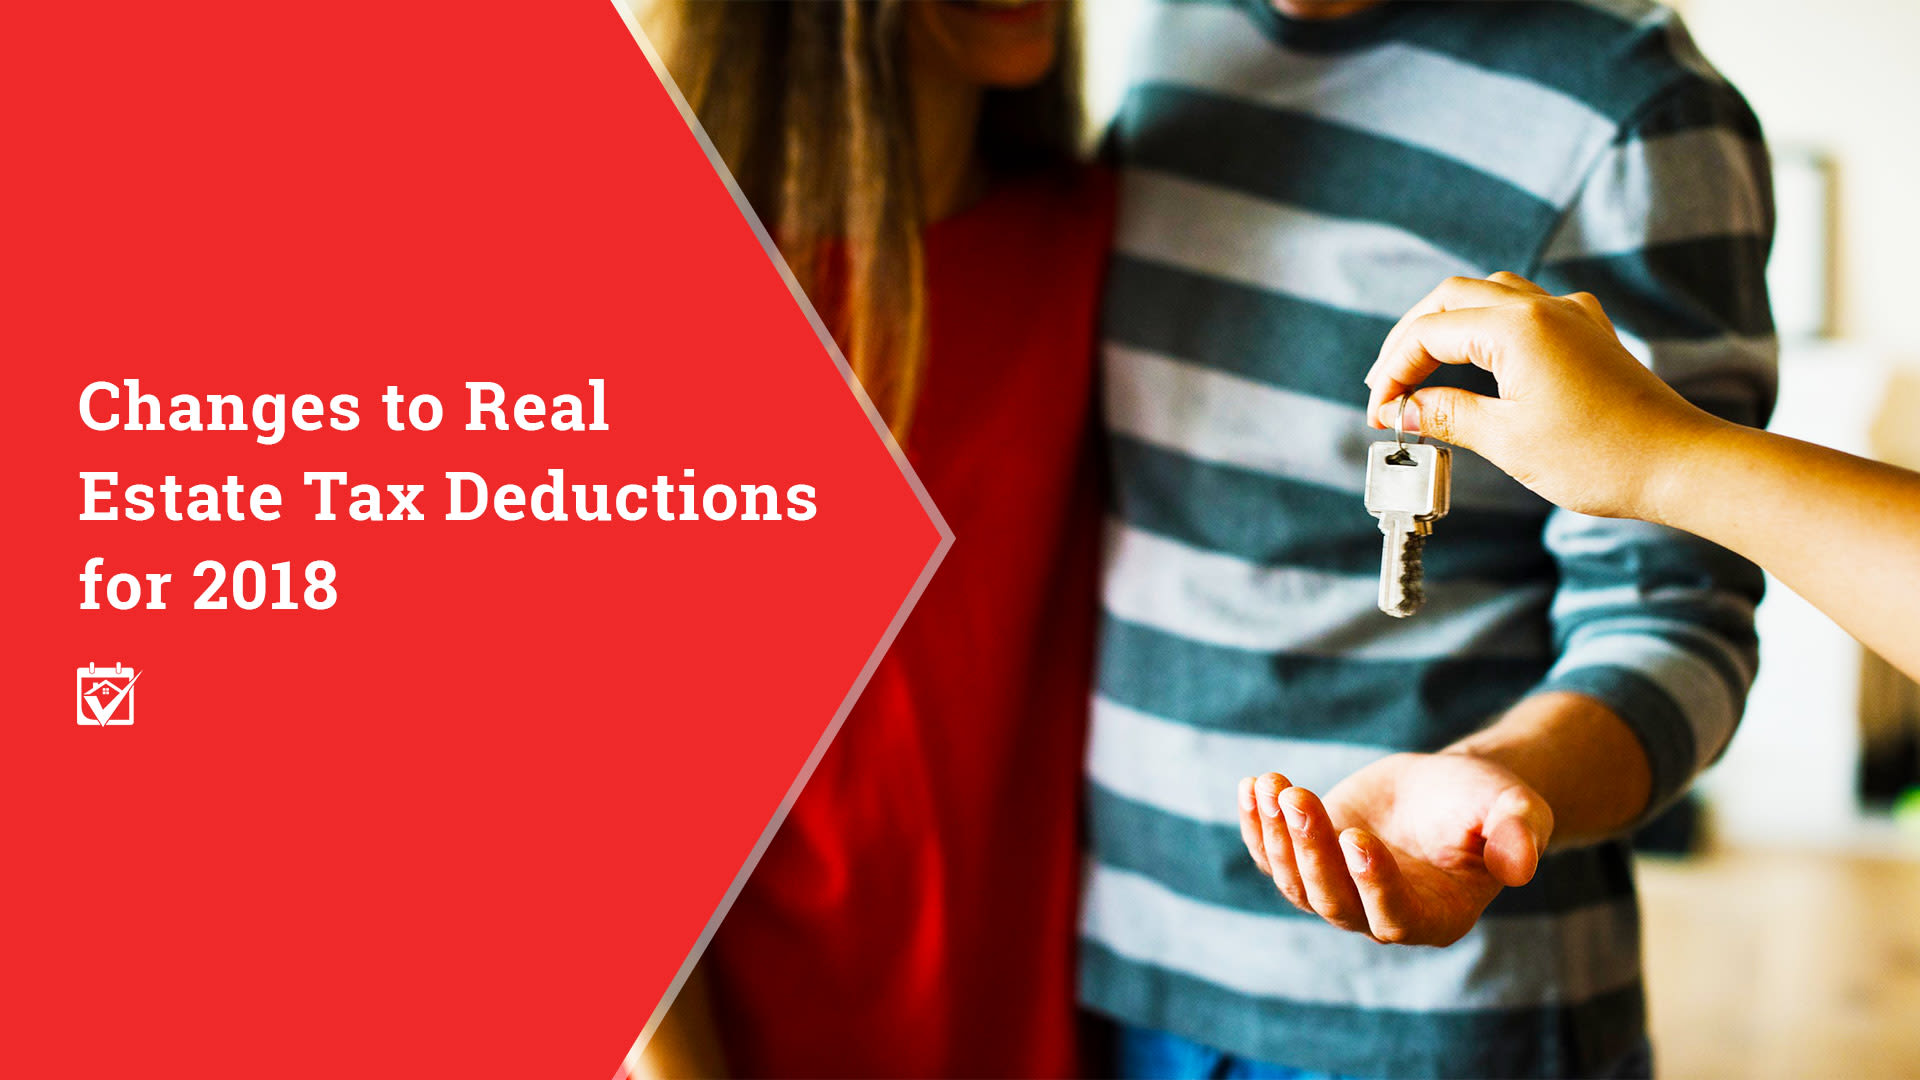 Changes in Real Estate Tax Deductions for 2018